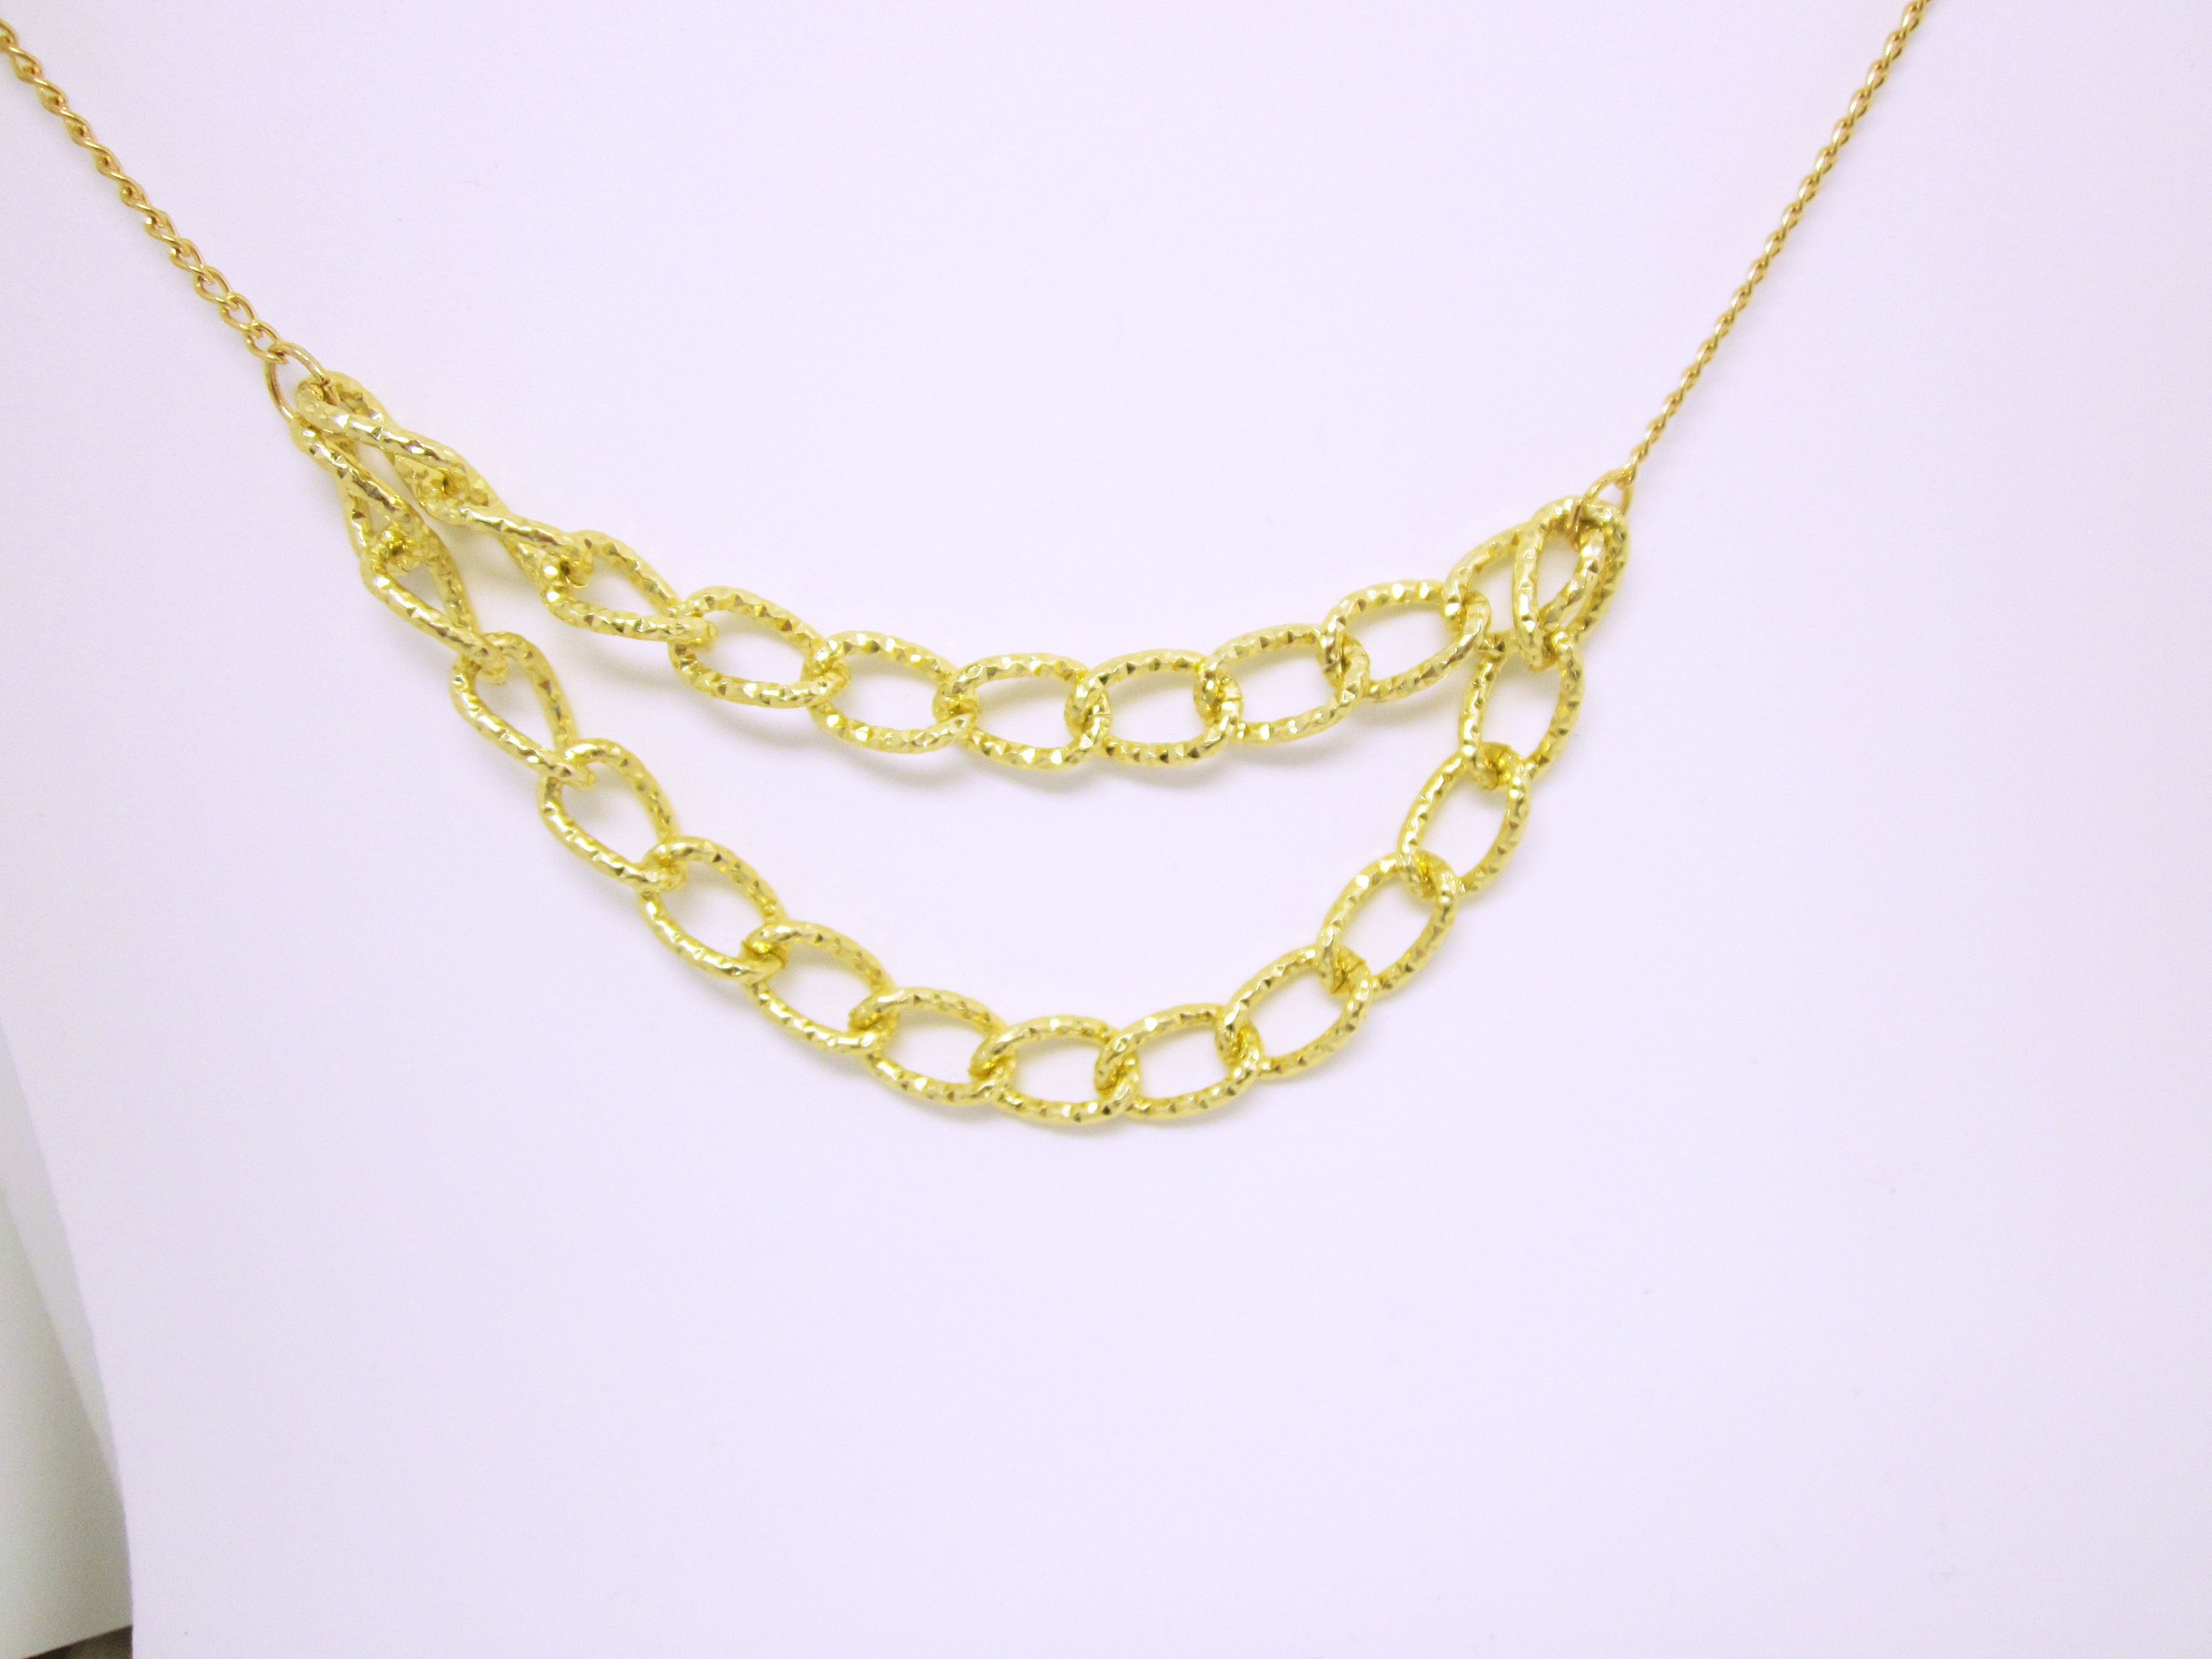 gold diamond shop figaro necklace made chain chains gevery cut